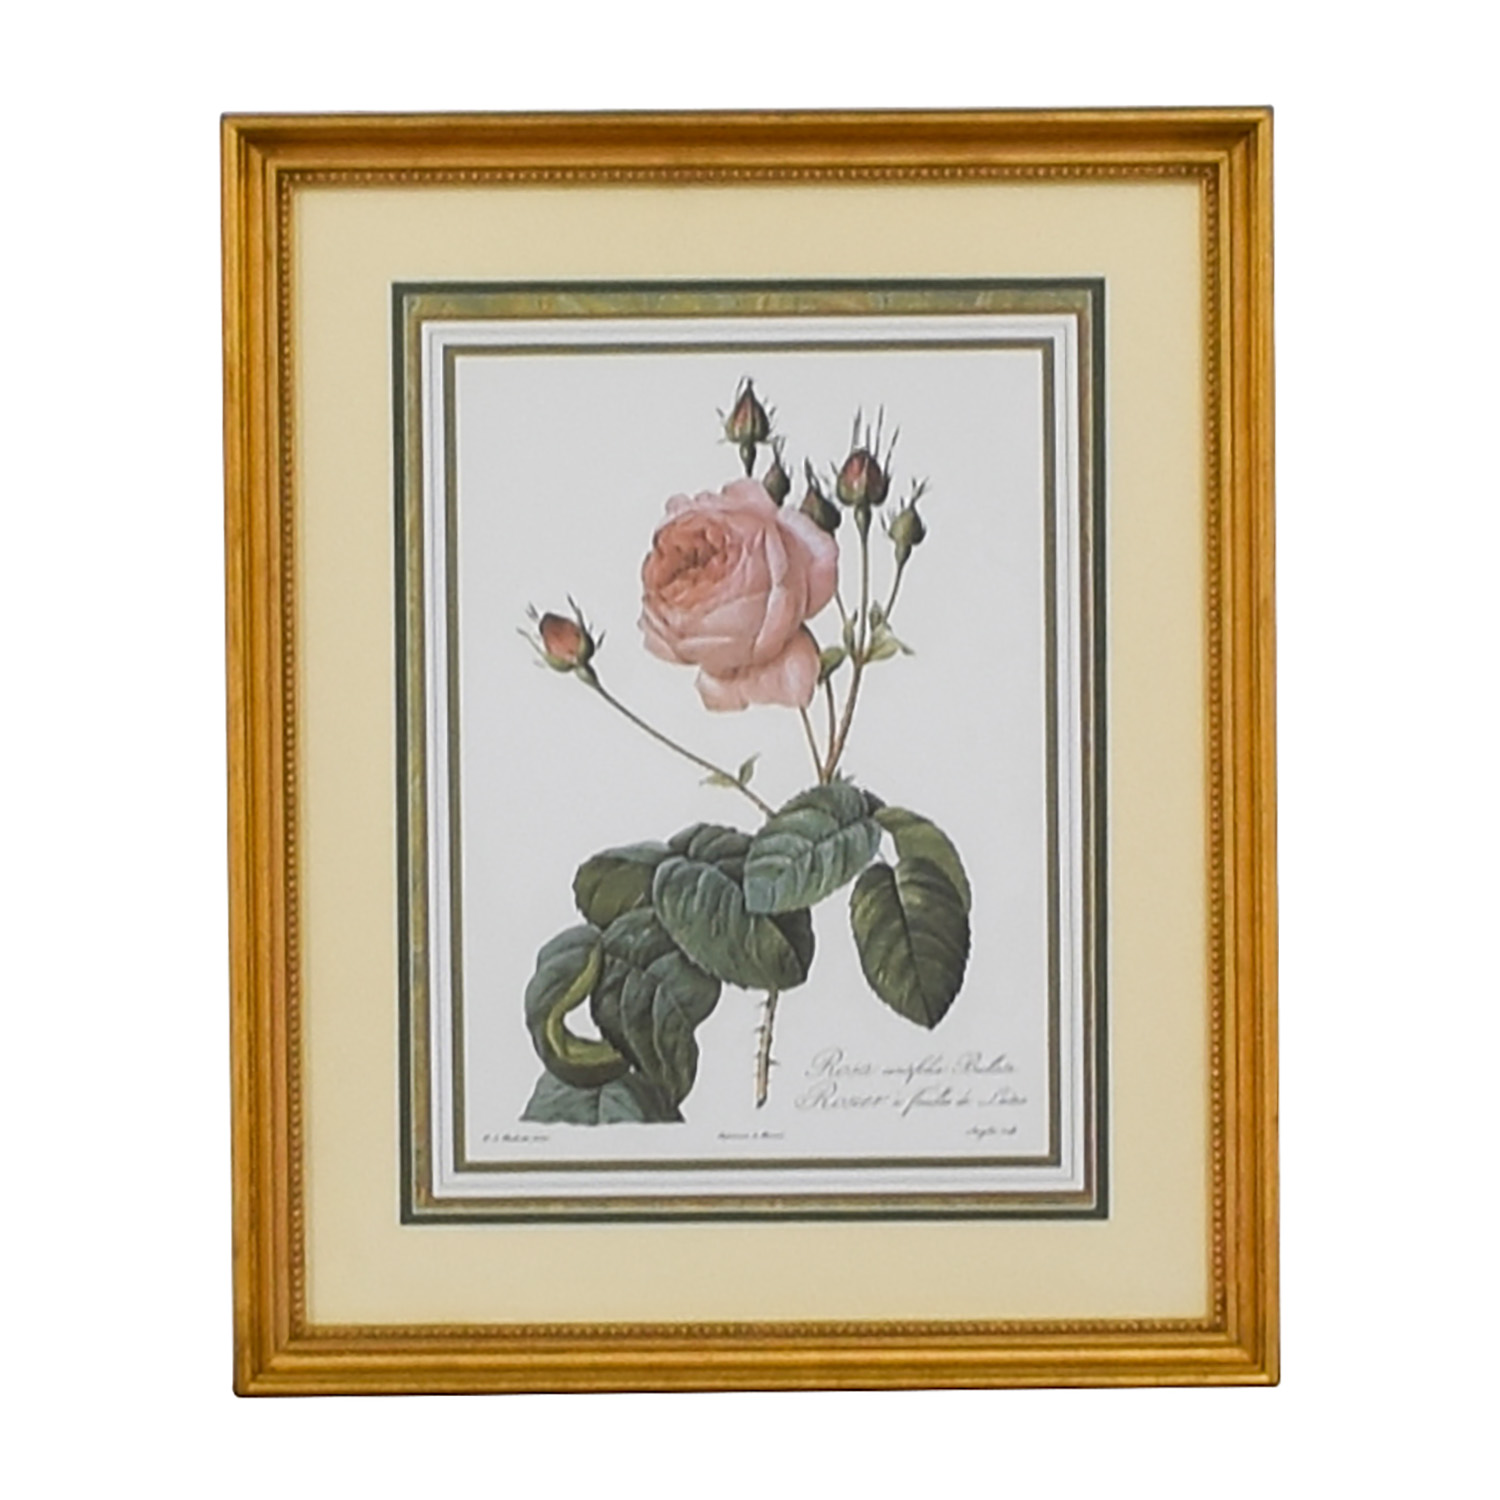 The Museum Collection The Museum Collection Rosier a Feuilles de Laitue Floral Print discount